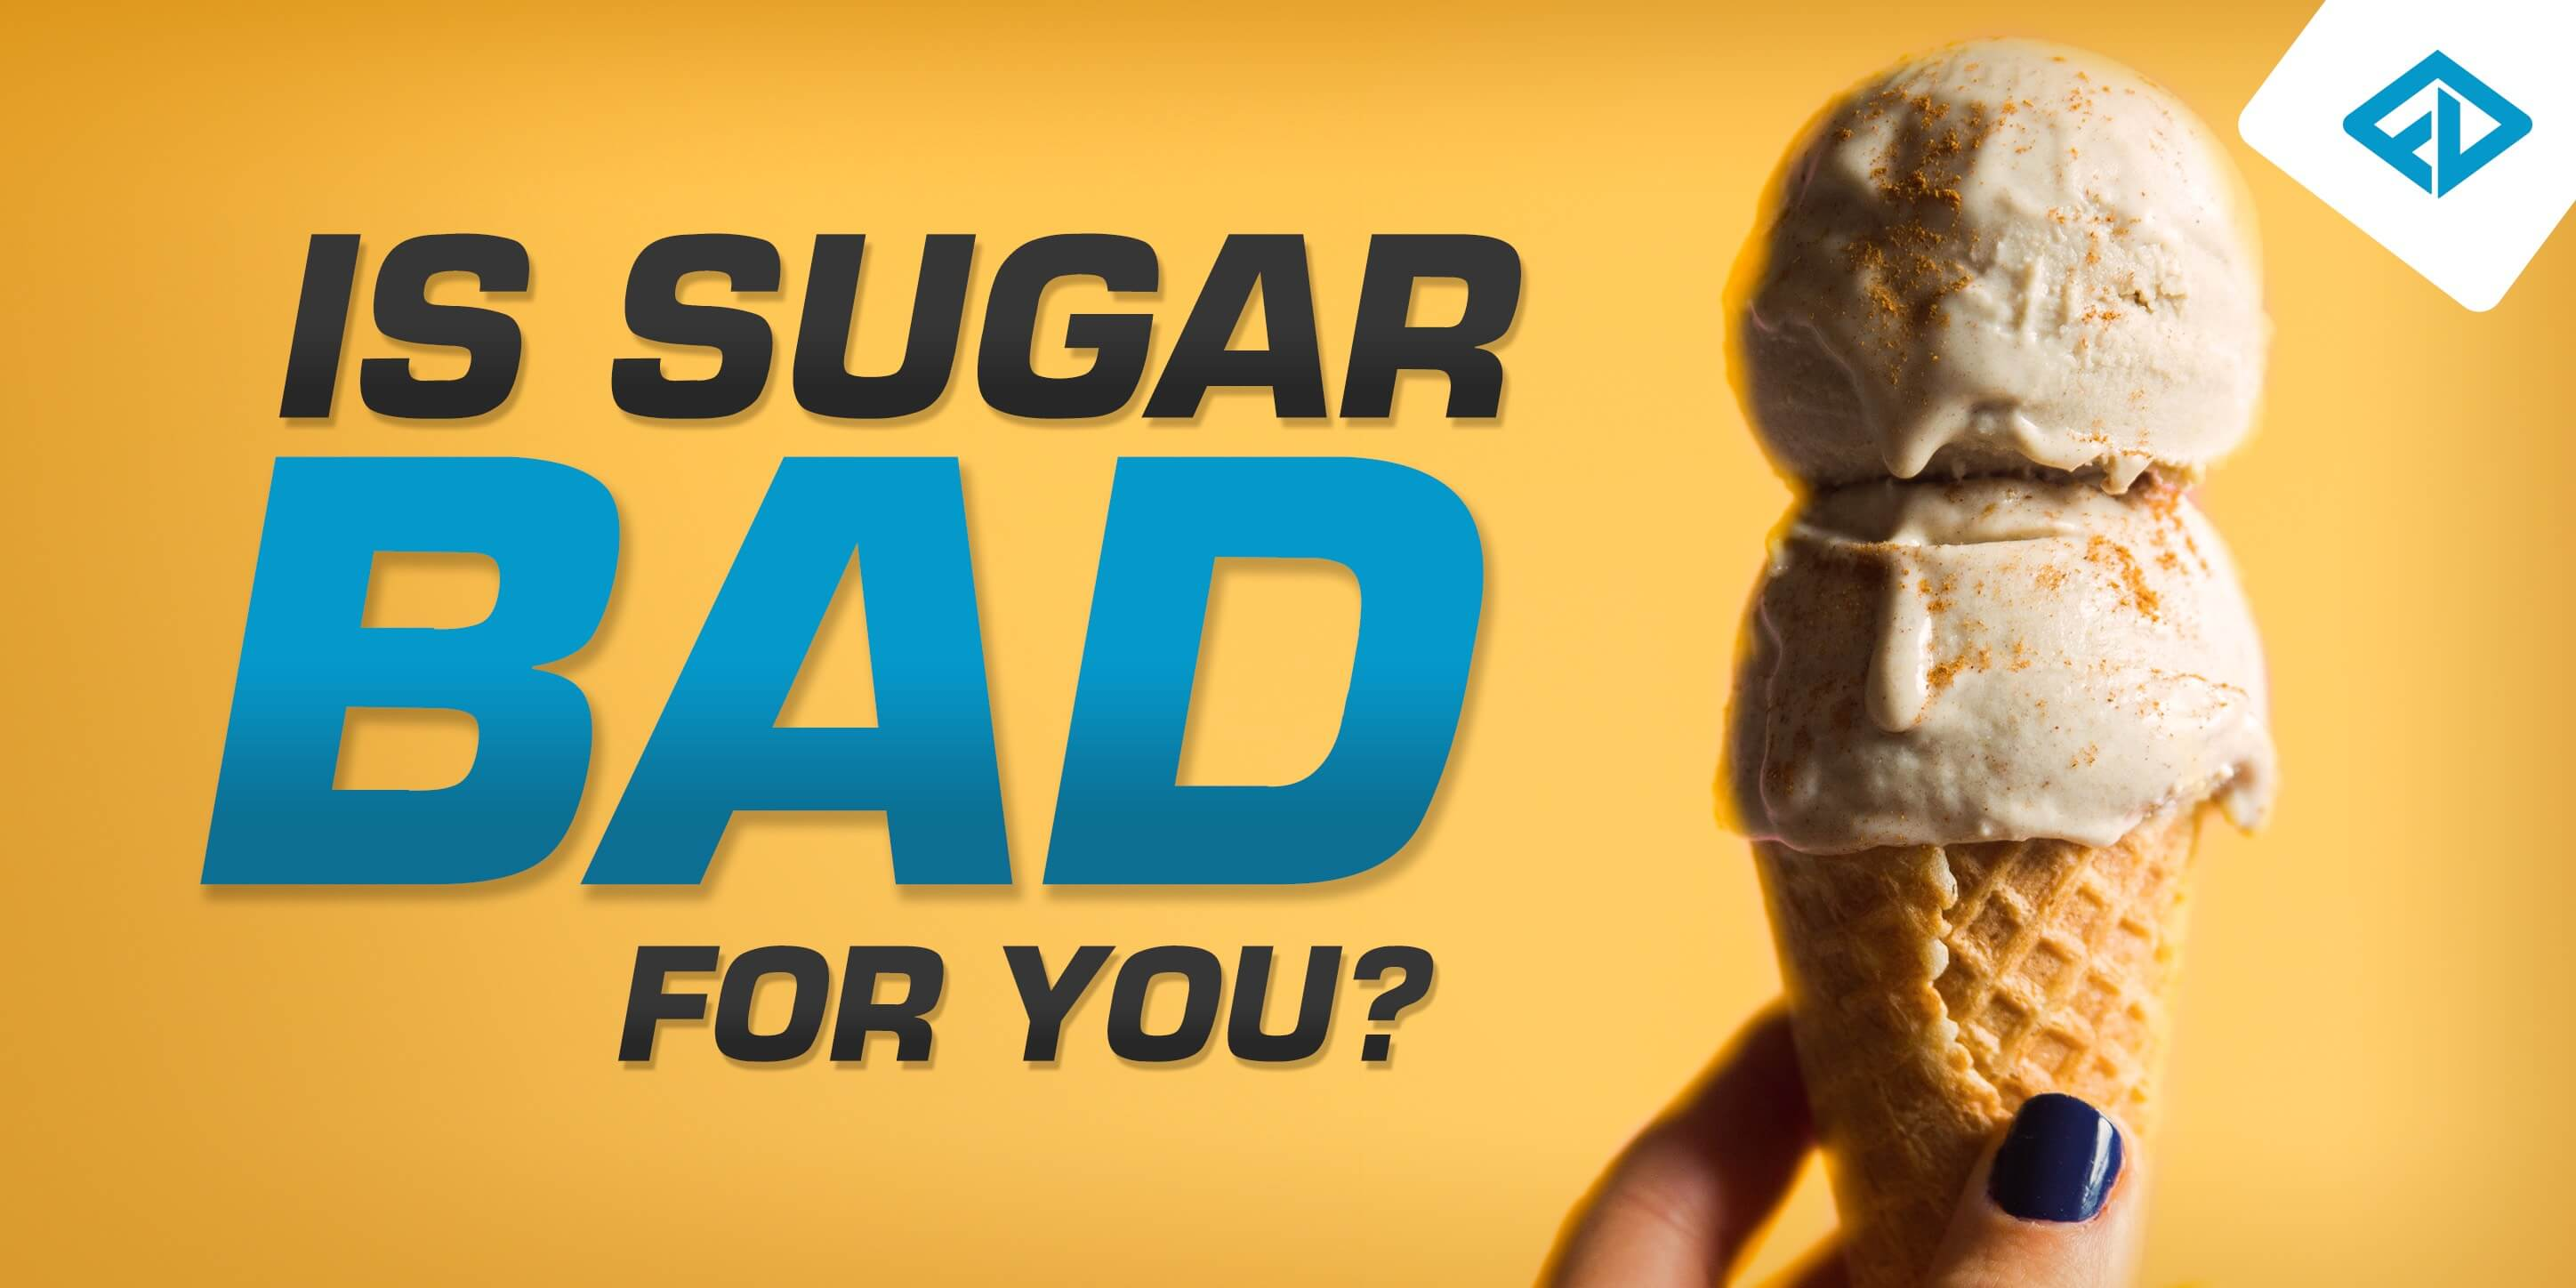 Is Sugar Bad For You?